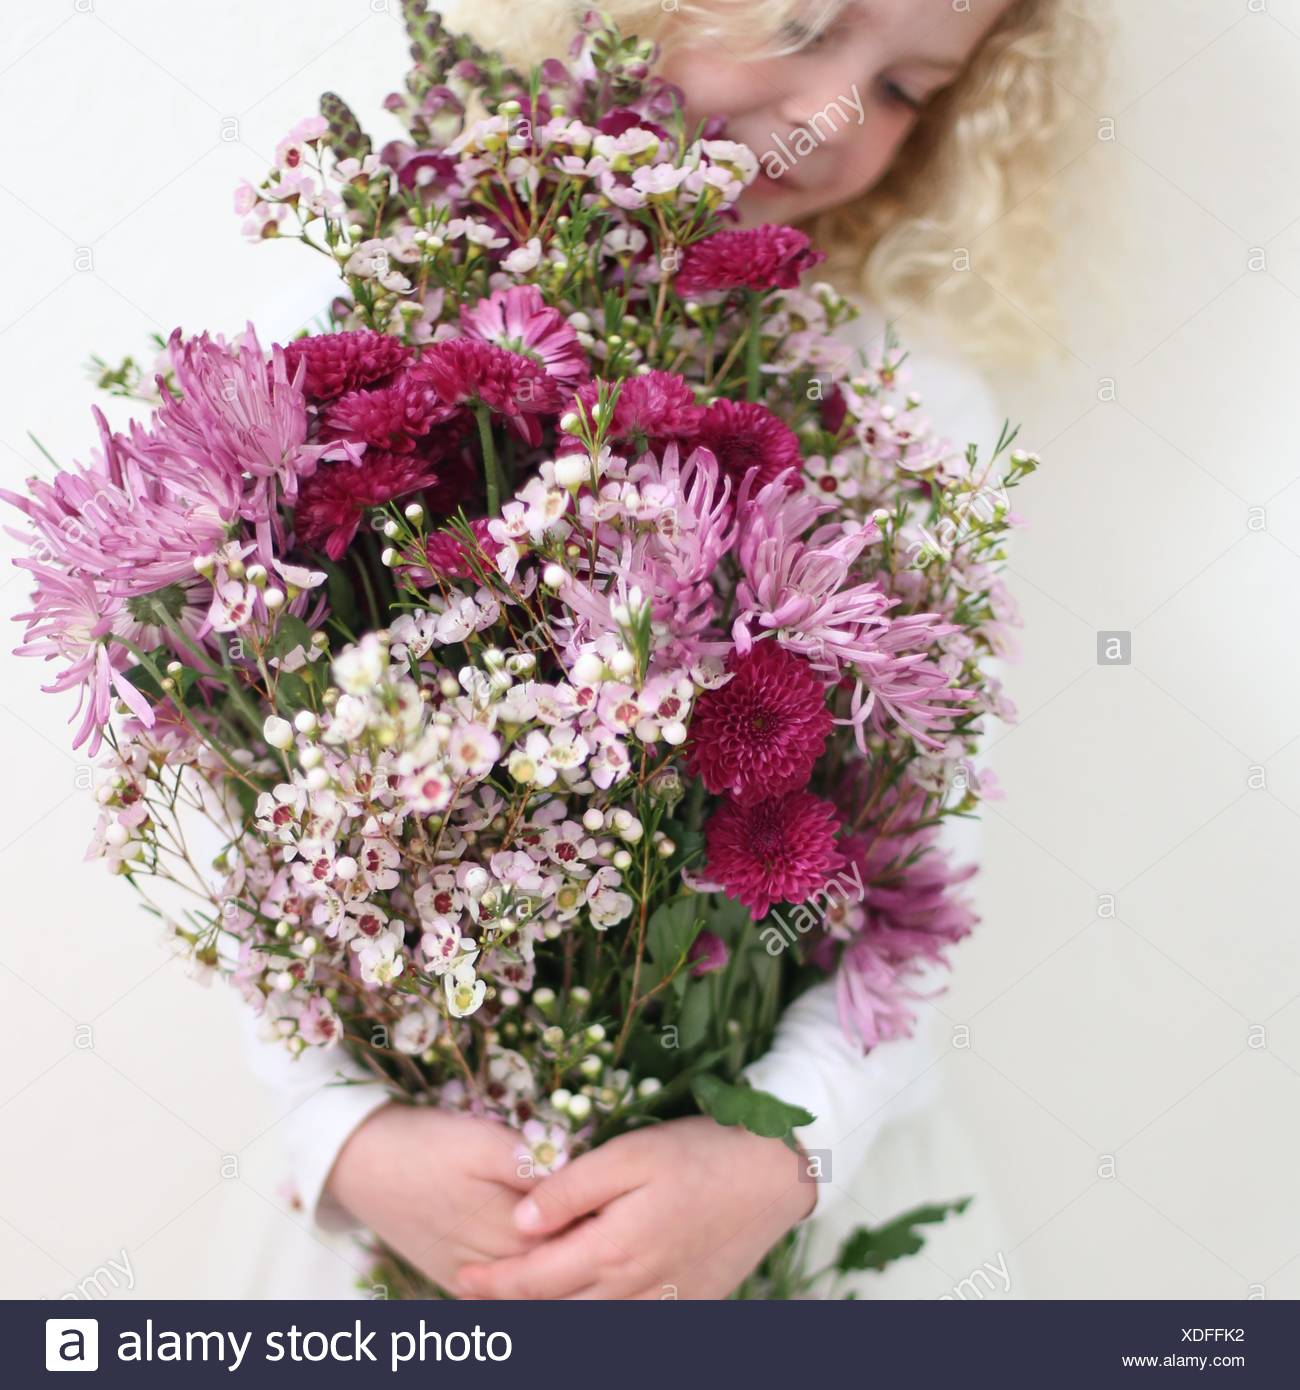 Girl holding large bunch of pink flowers stock photo 283697990 alamy girl holding large bunch of pink flowers mightylinksfo